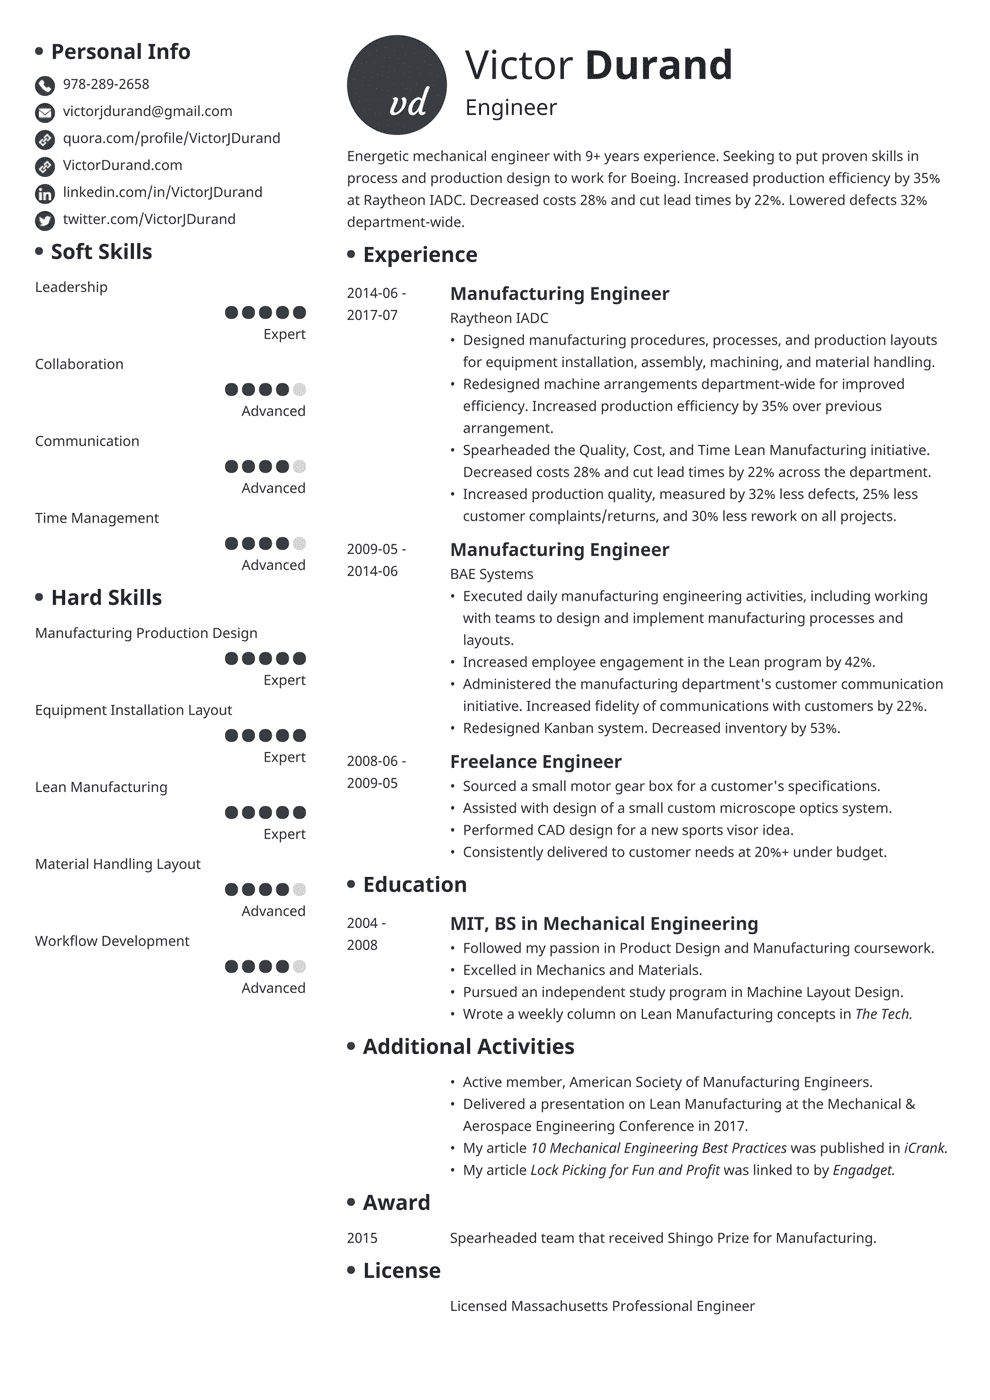 12+ Engineering Resume Examples (Template, Guide & Skills)